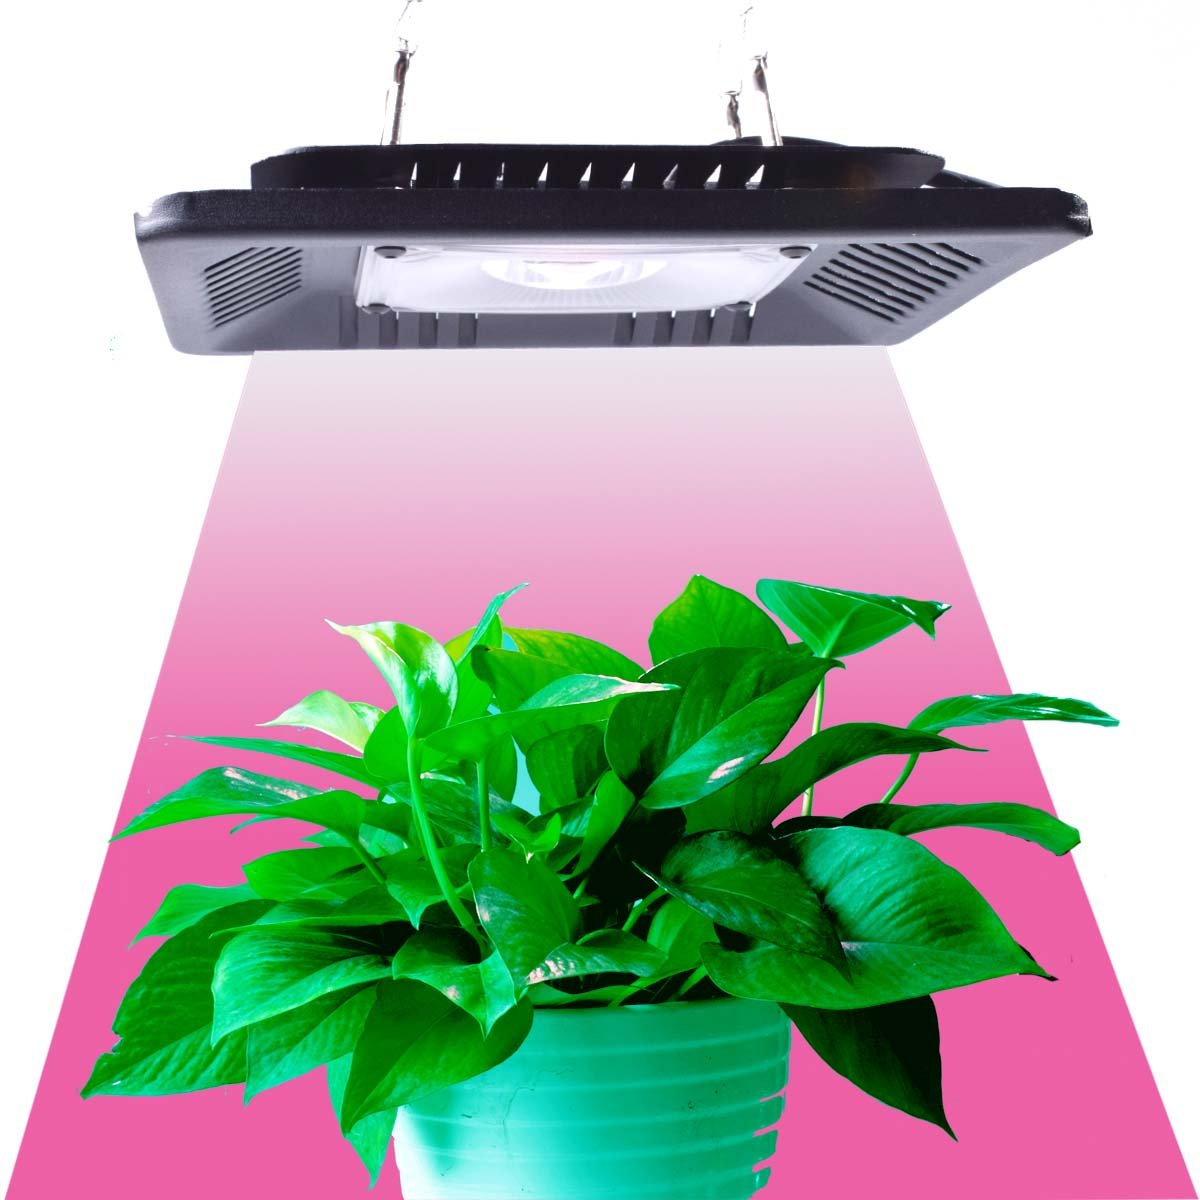 Amazon.com : Full Spectrum LED Grow Light 1000 Watt/1200W for Indoor Plants Veg and Flower (T-100W) : Garden & Outdoor